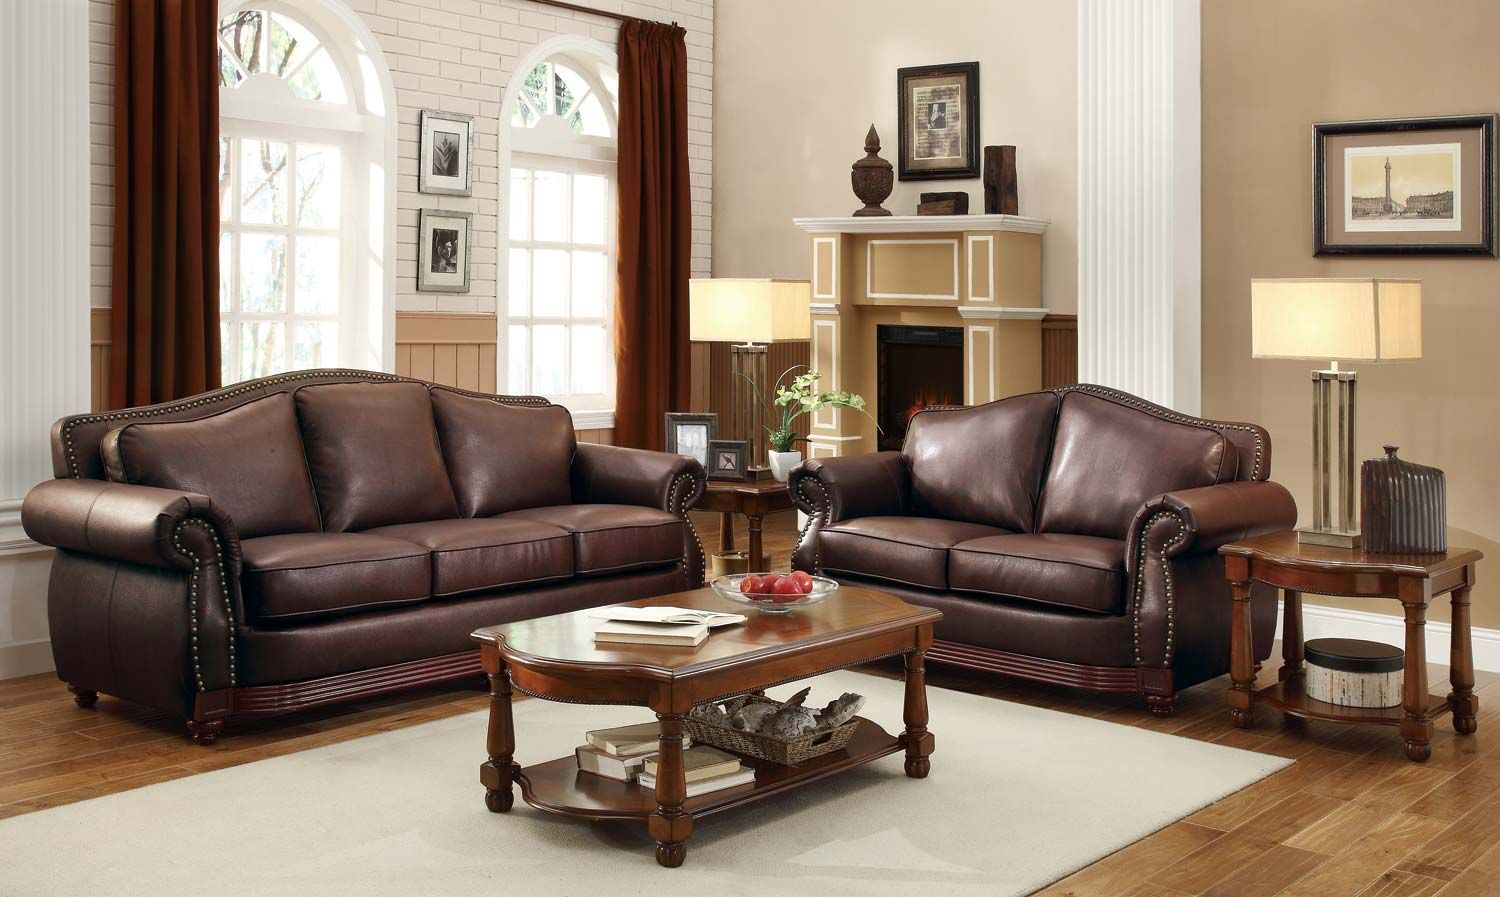 How To Buy Your Trendy Leather Sofa Online In 2017 | Sofa World | Pinterest  | Leather Sofas, Leather Sectional Sofas And Leather Sectional